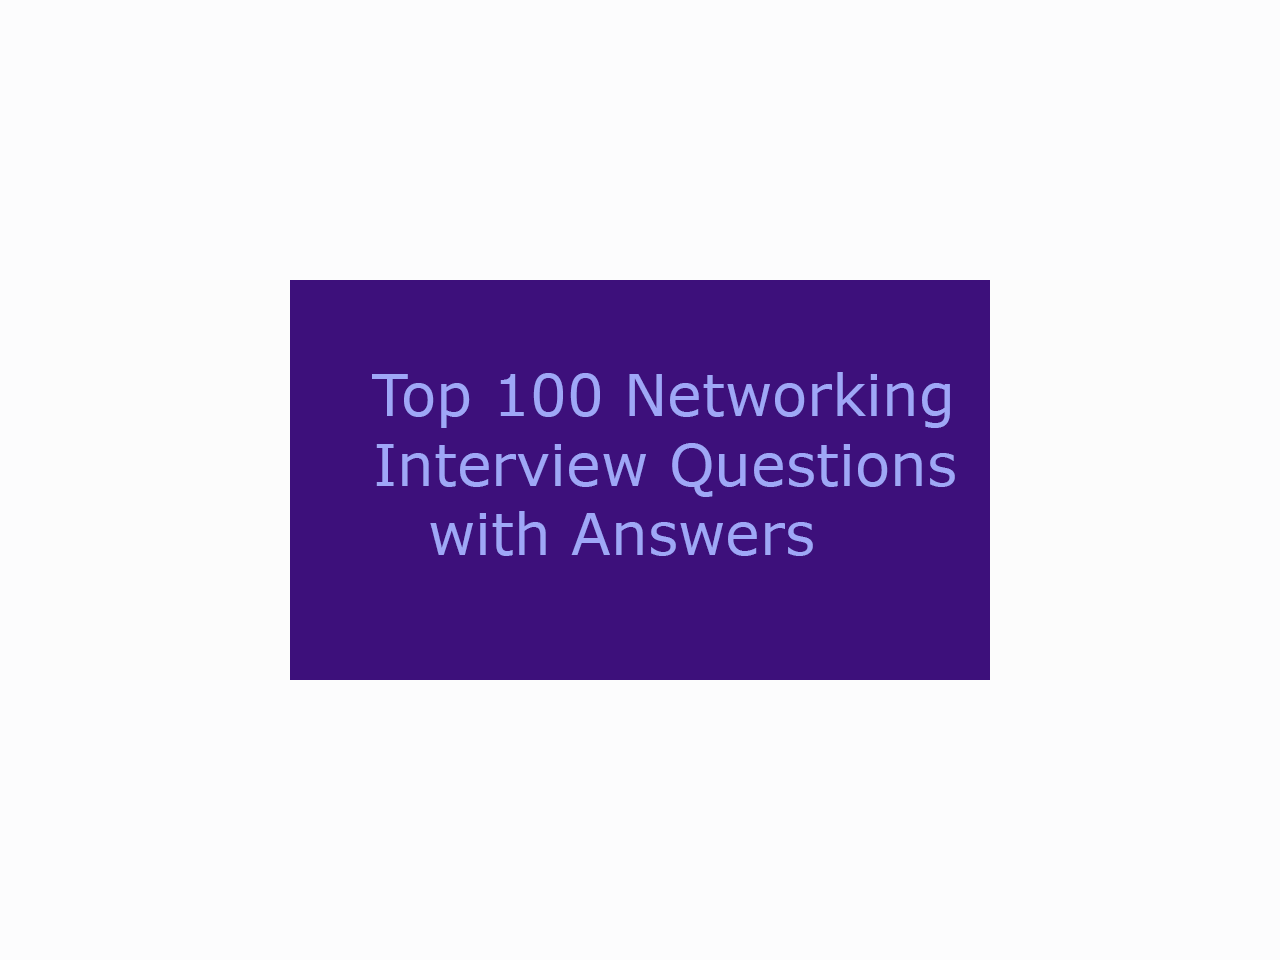 Top 100 Networking Interview Questions With Answers